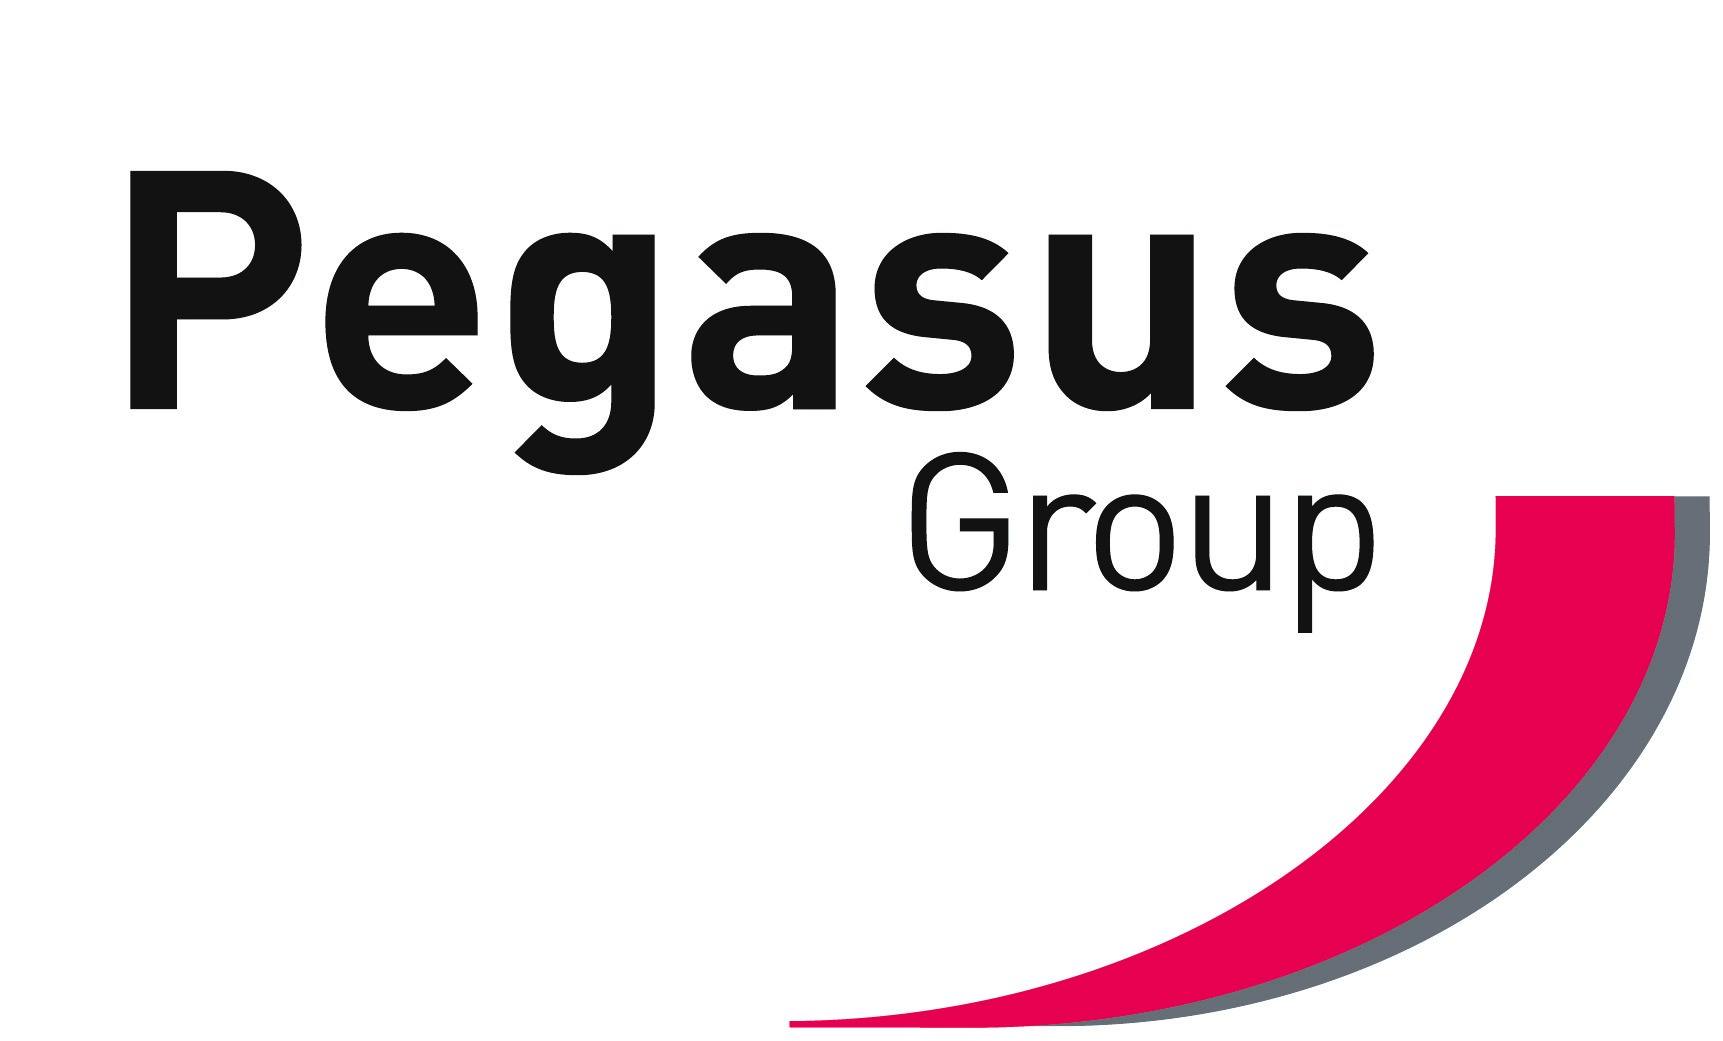 Pegasus Group Urban Design Group Practice